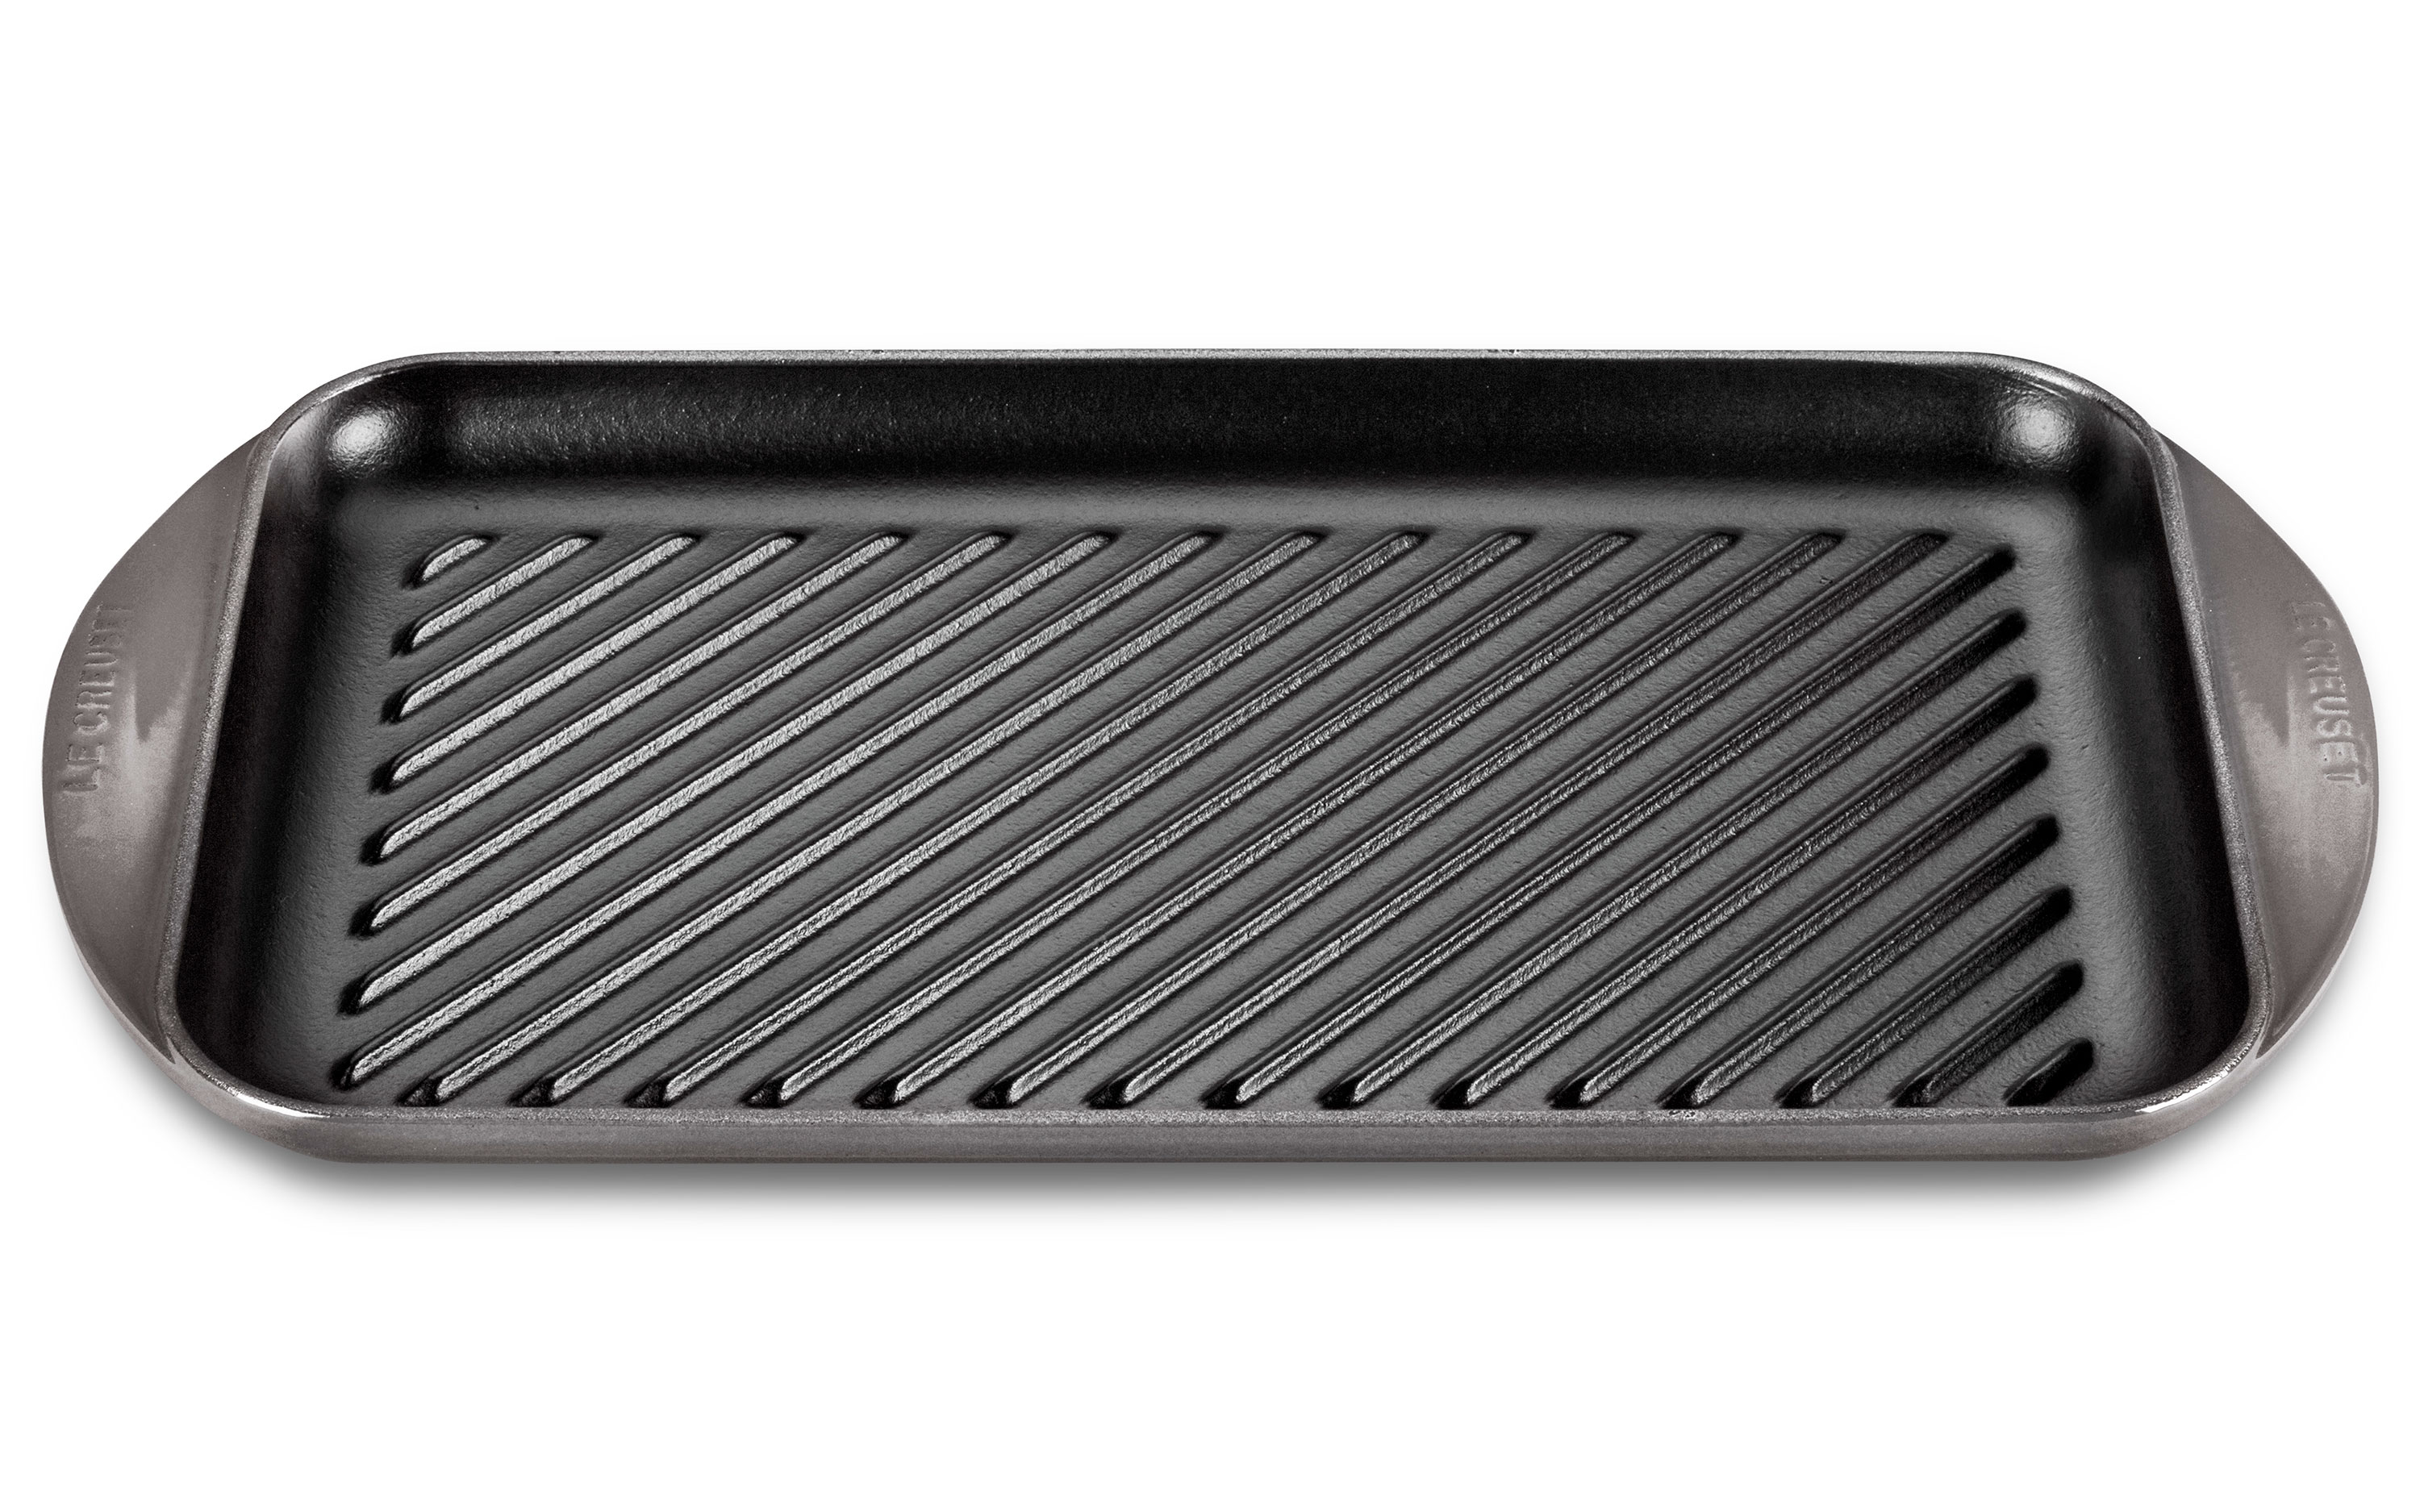 Le Creuset Cast Iron XL Double Burner Grill Pan 1575 x 9inch